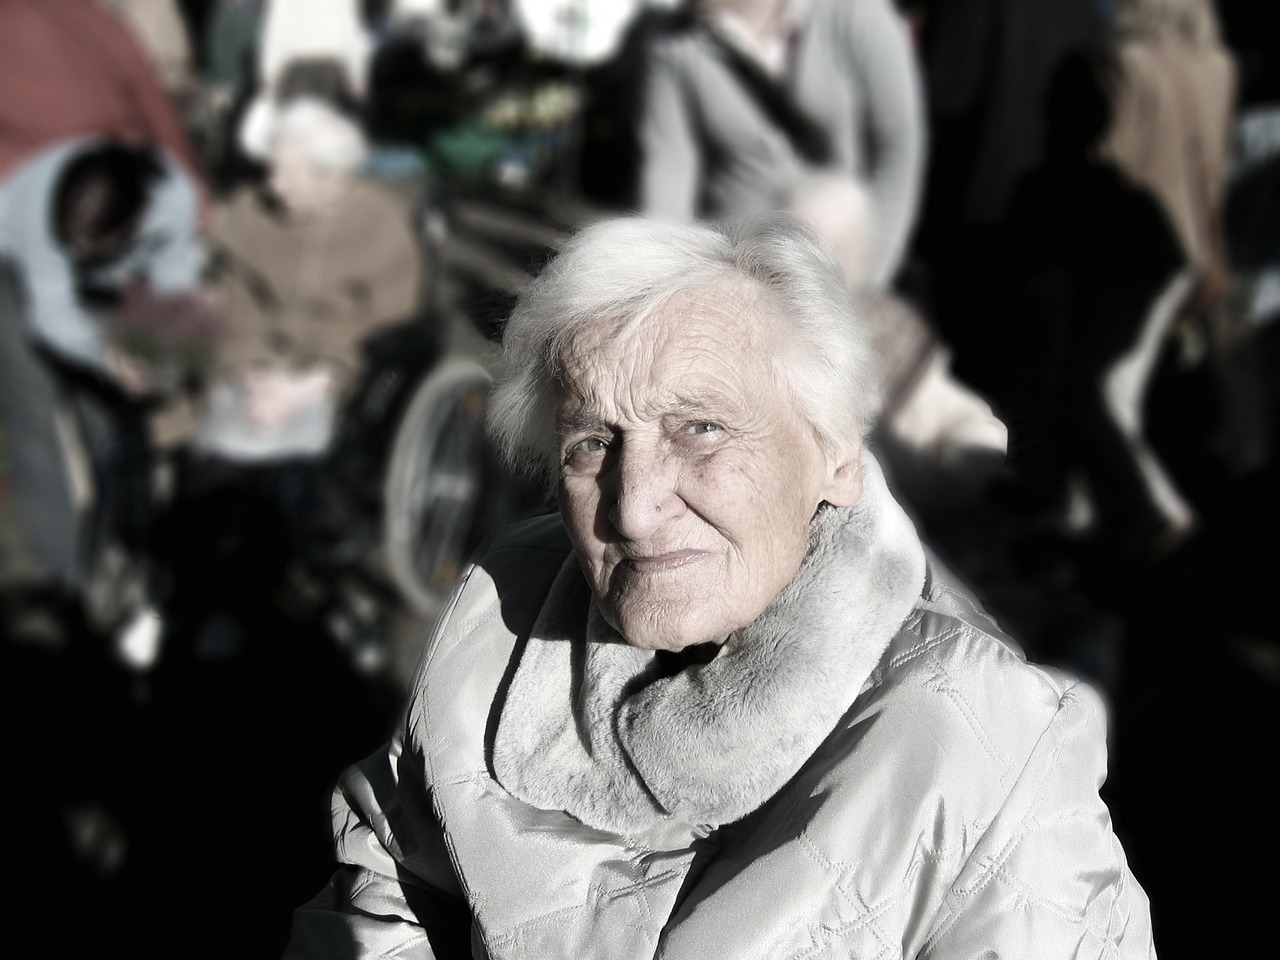 How will we know when Australia's aged care system is fixed?